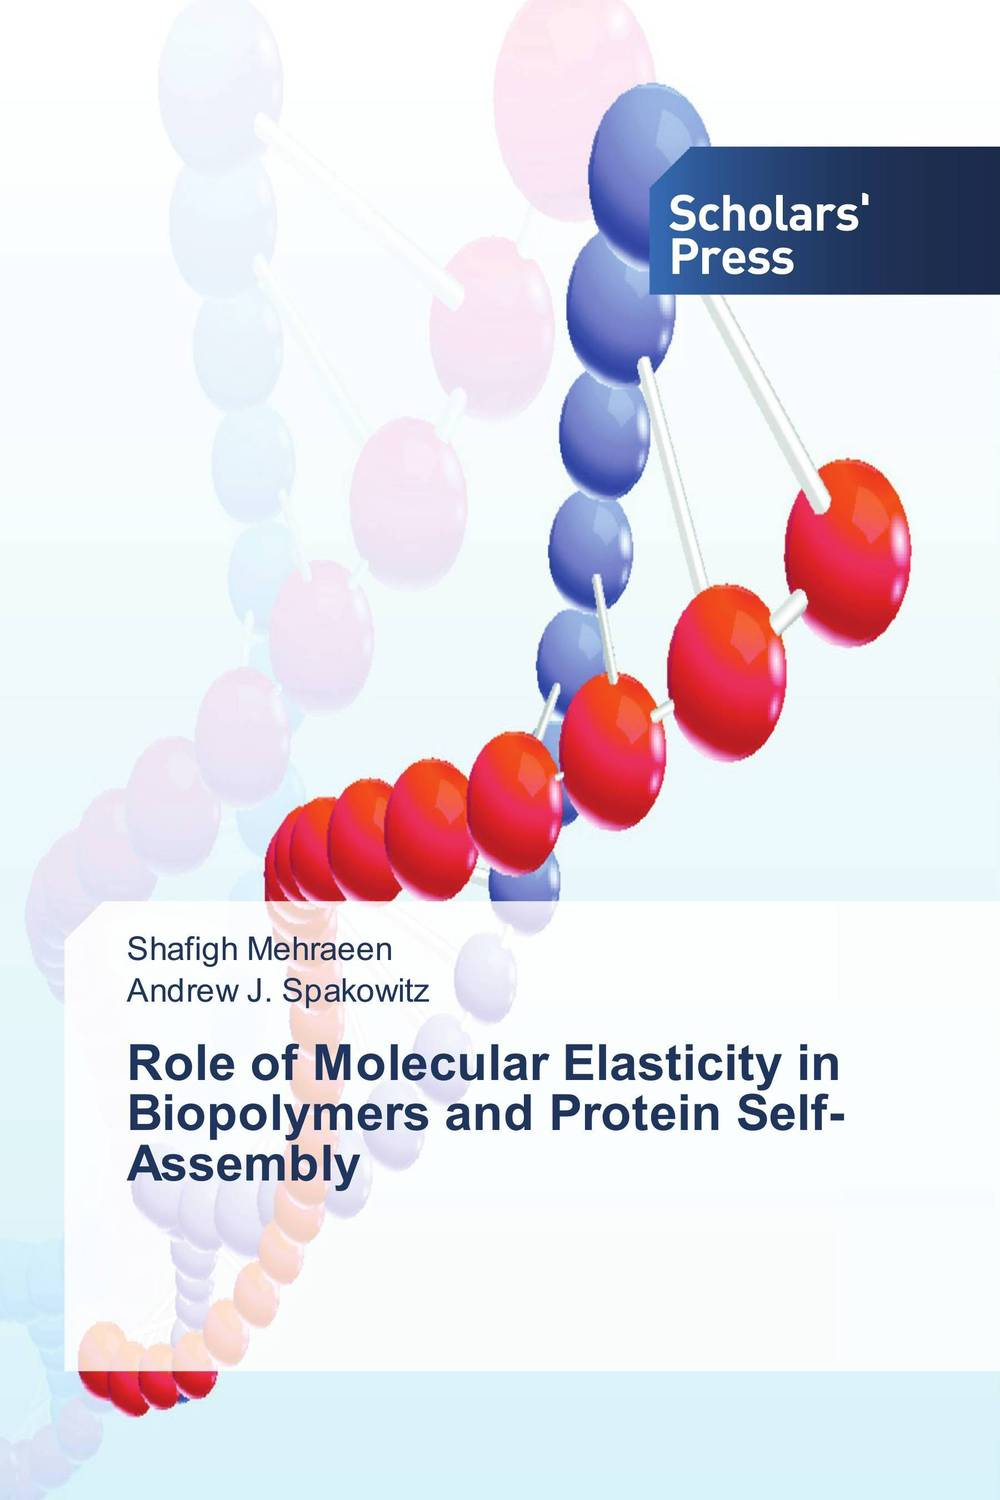 Role of Molecular Elasticity in Biopolymers and Protein Self-Assembly